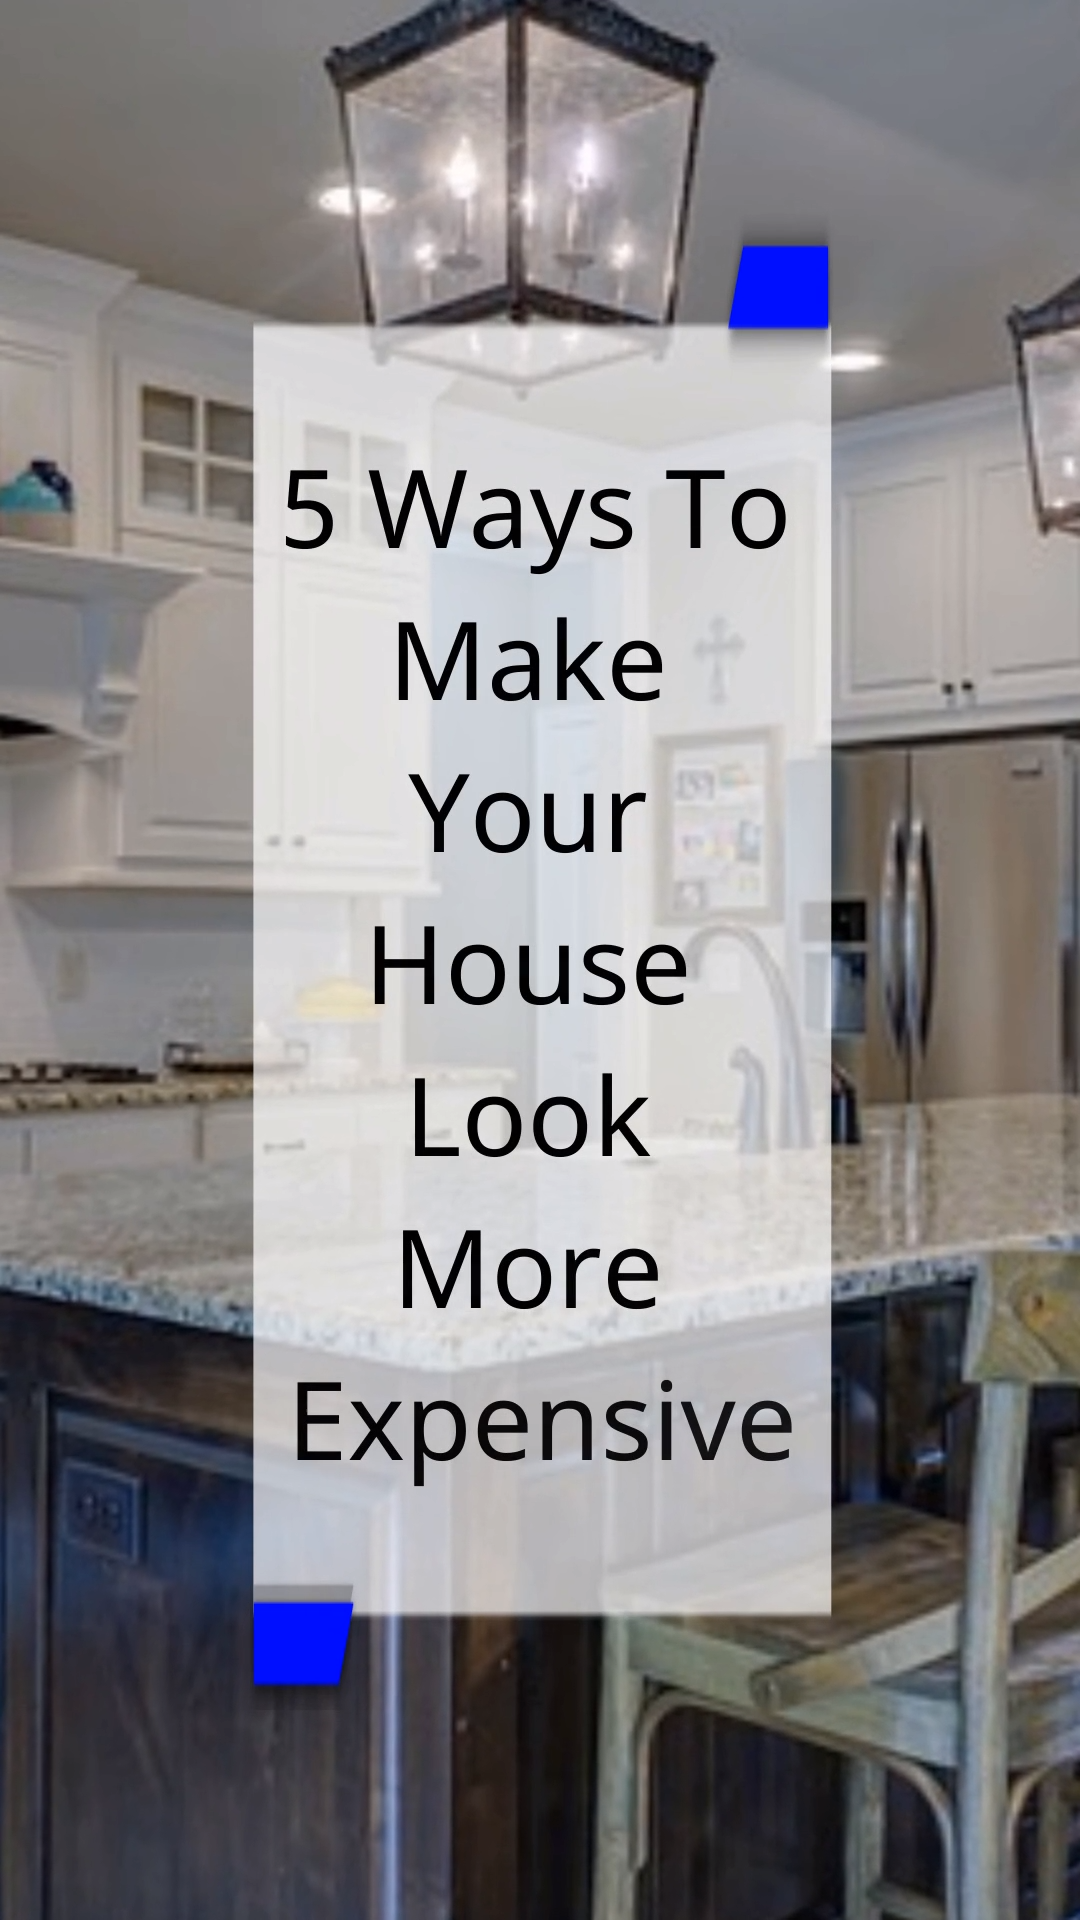 When I bought my new builder grade house I was on a budget but I still wanted those luxury touches. I was able to upgrade it with these simple home decor ideas that don't have to cost a lot of money. Click through to learn more interior decorating tips for making your house look more expensive.